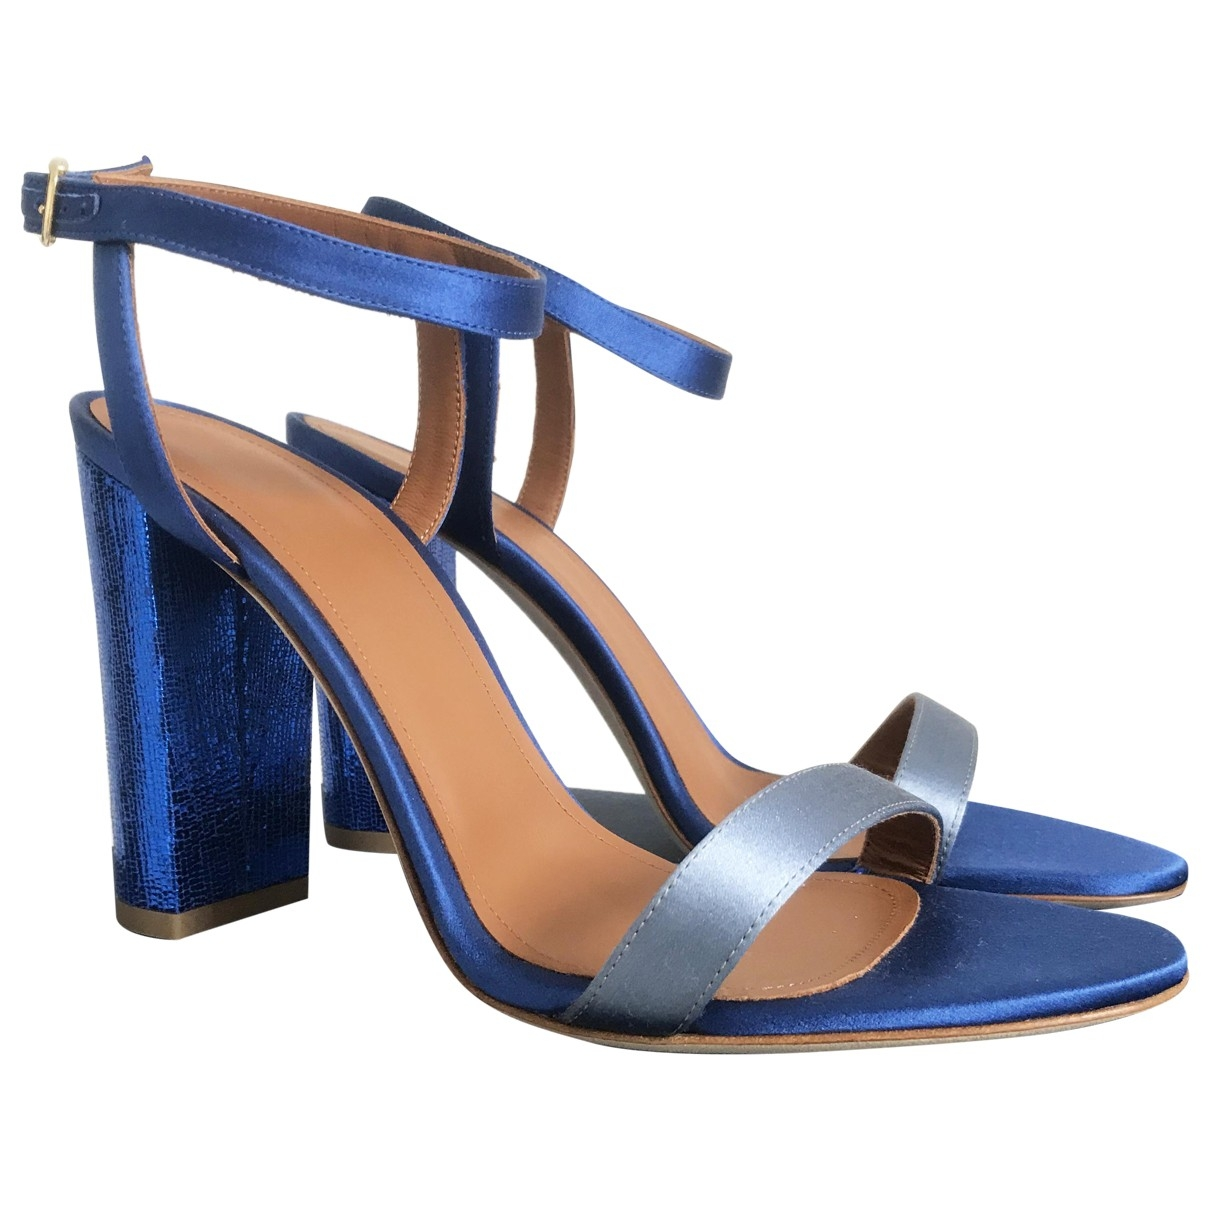 Malone Souliers \N Blue Cloth Sandals for Women 40 EU